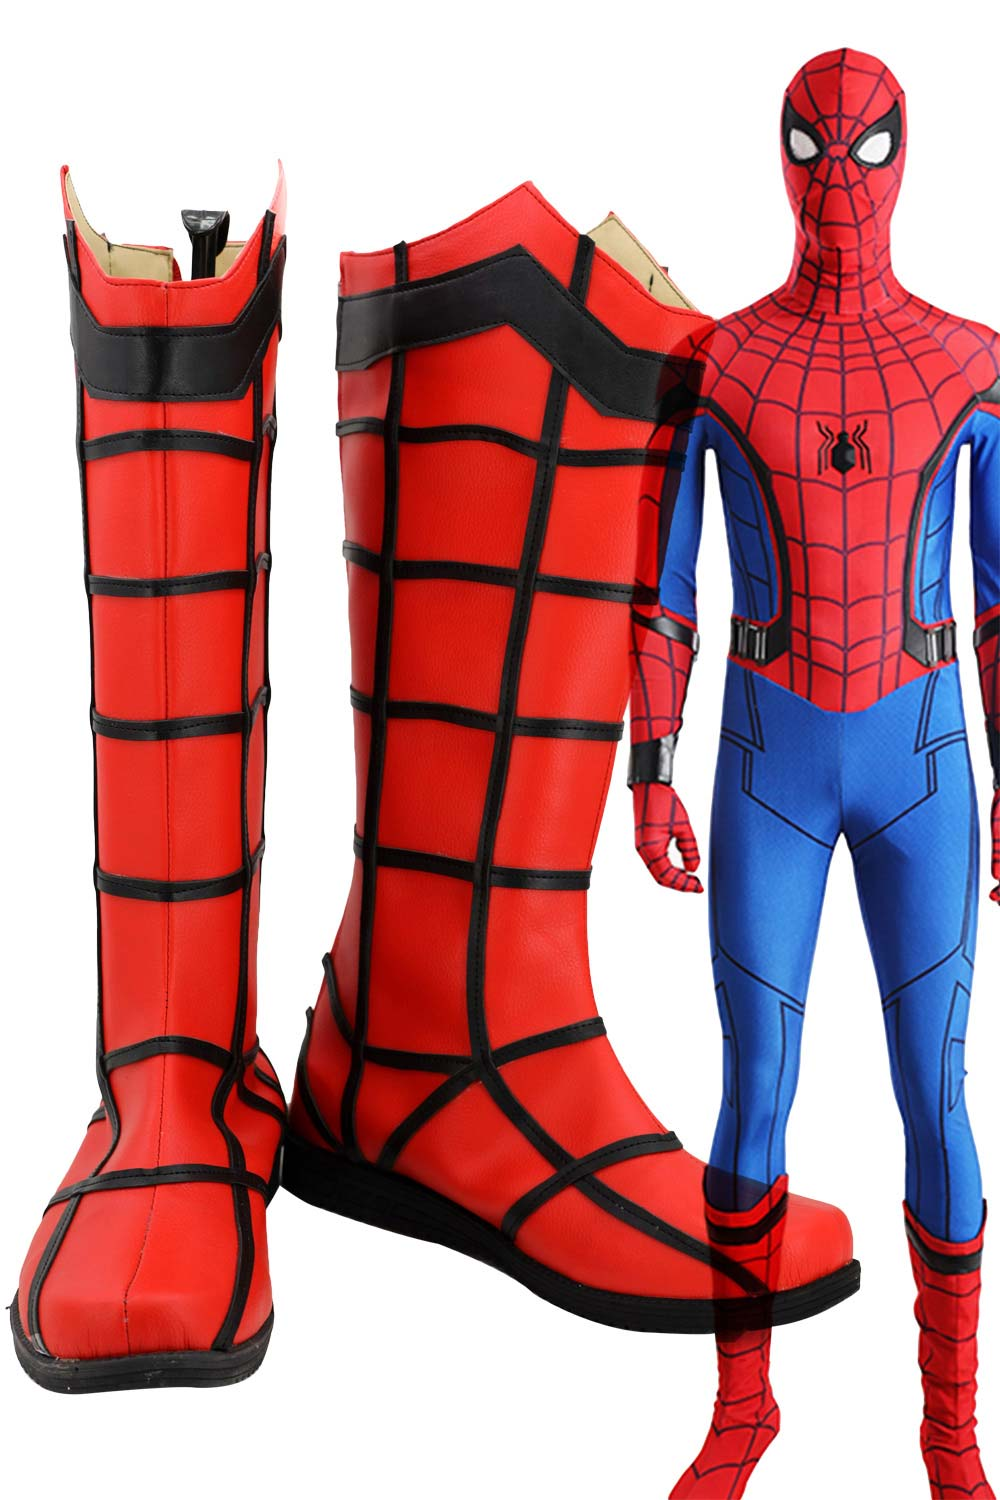 Spiderman Boots Shoes Cosplay Superhero spider-man homecoming Cosplay Costume Spider-Man shoes For Adult Men European Size